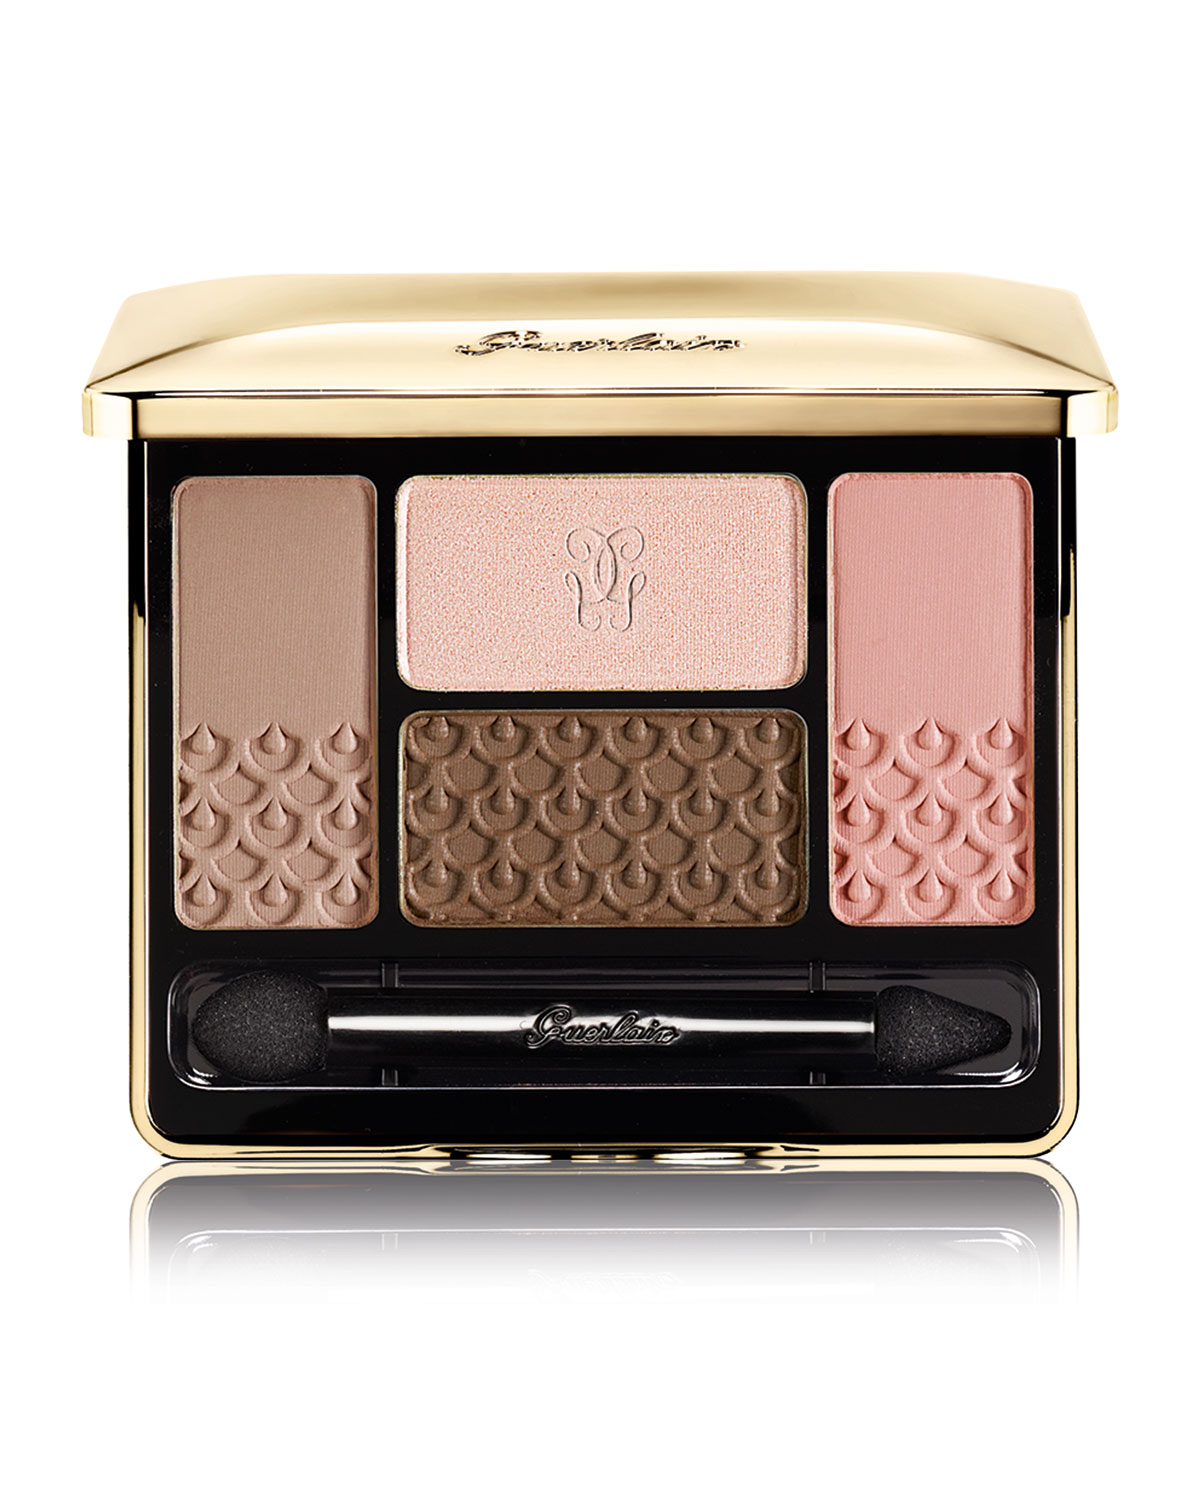 Four Shade Eyeshadow Palette, No. 15 Les Sables - Guerlain